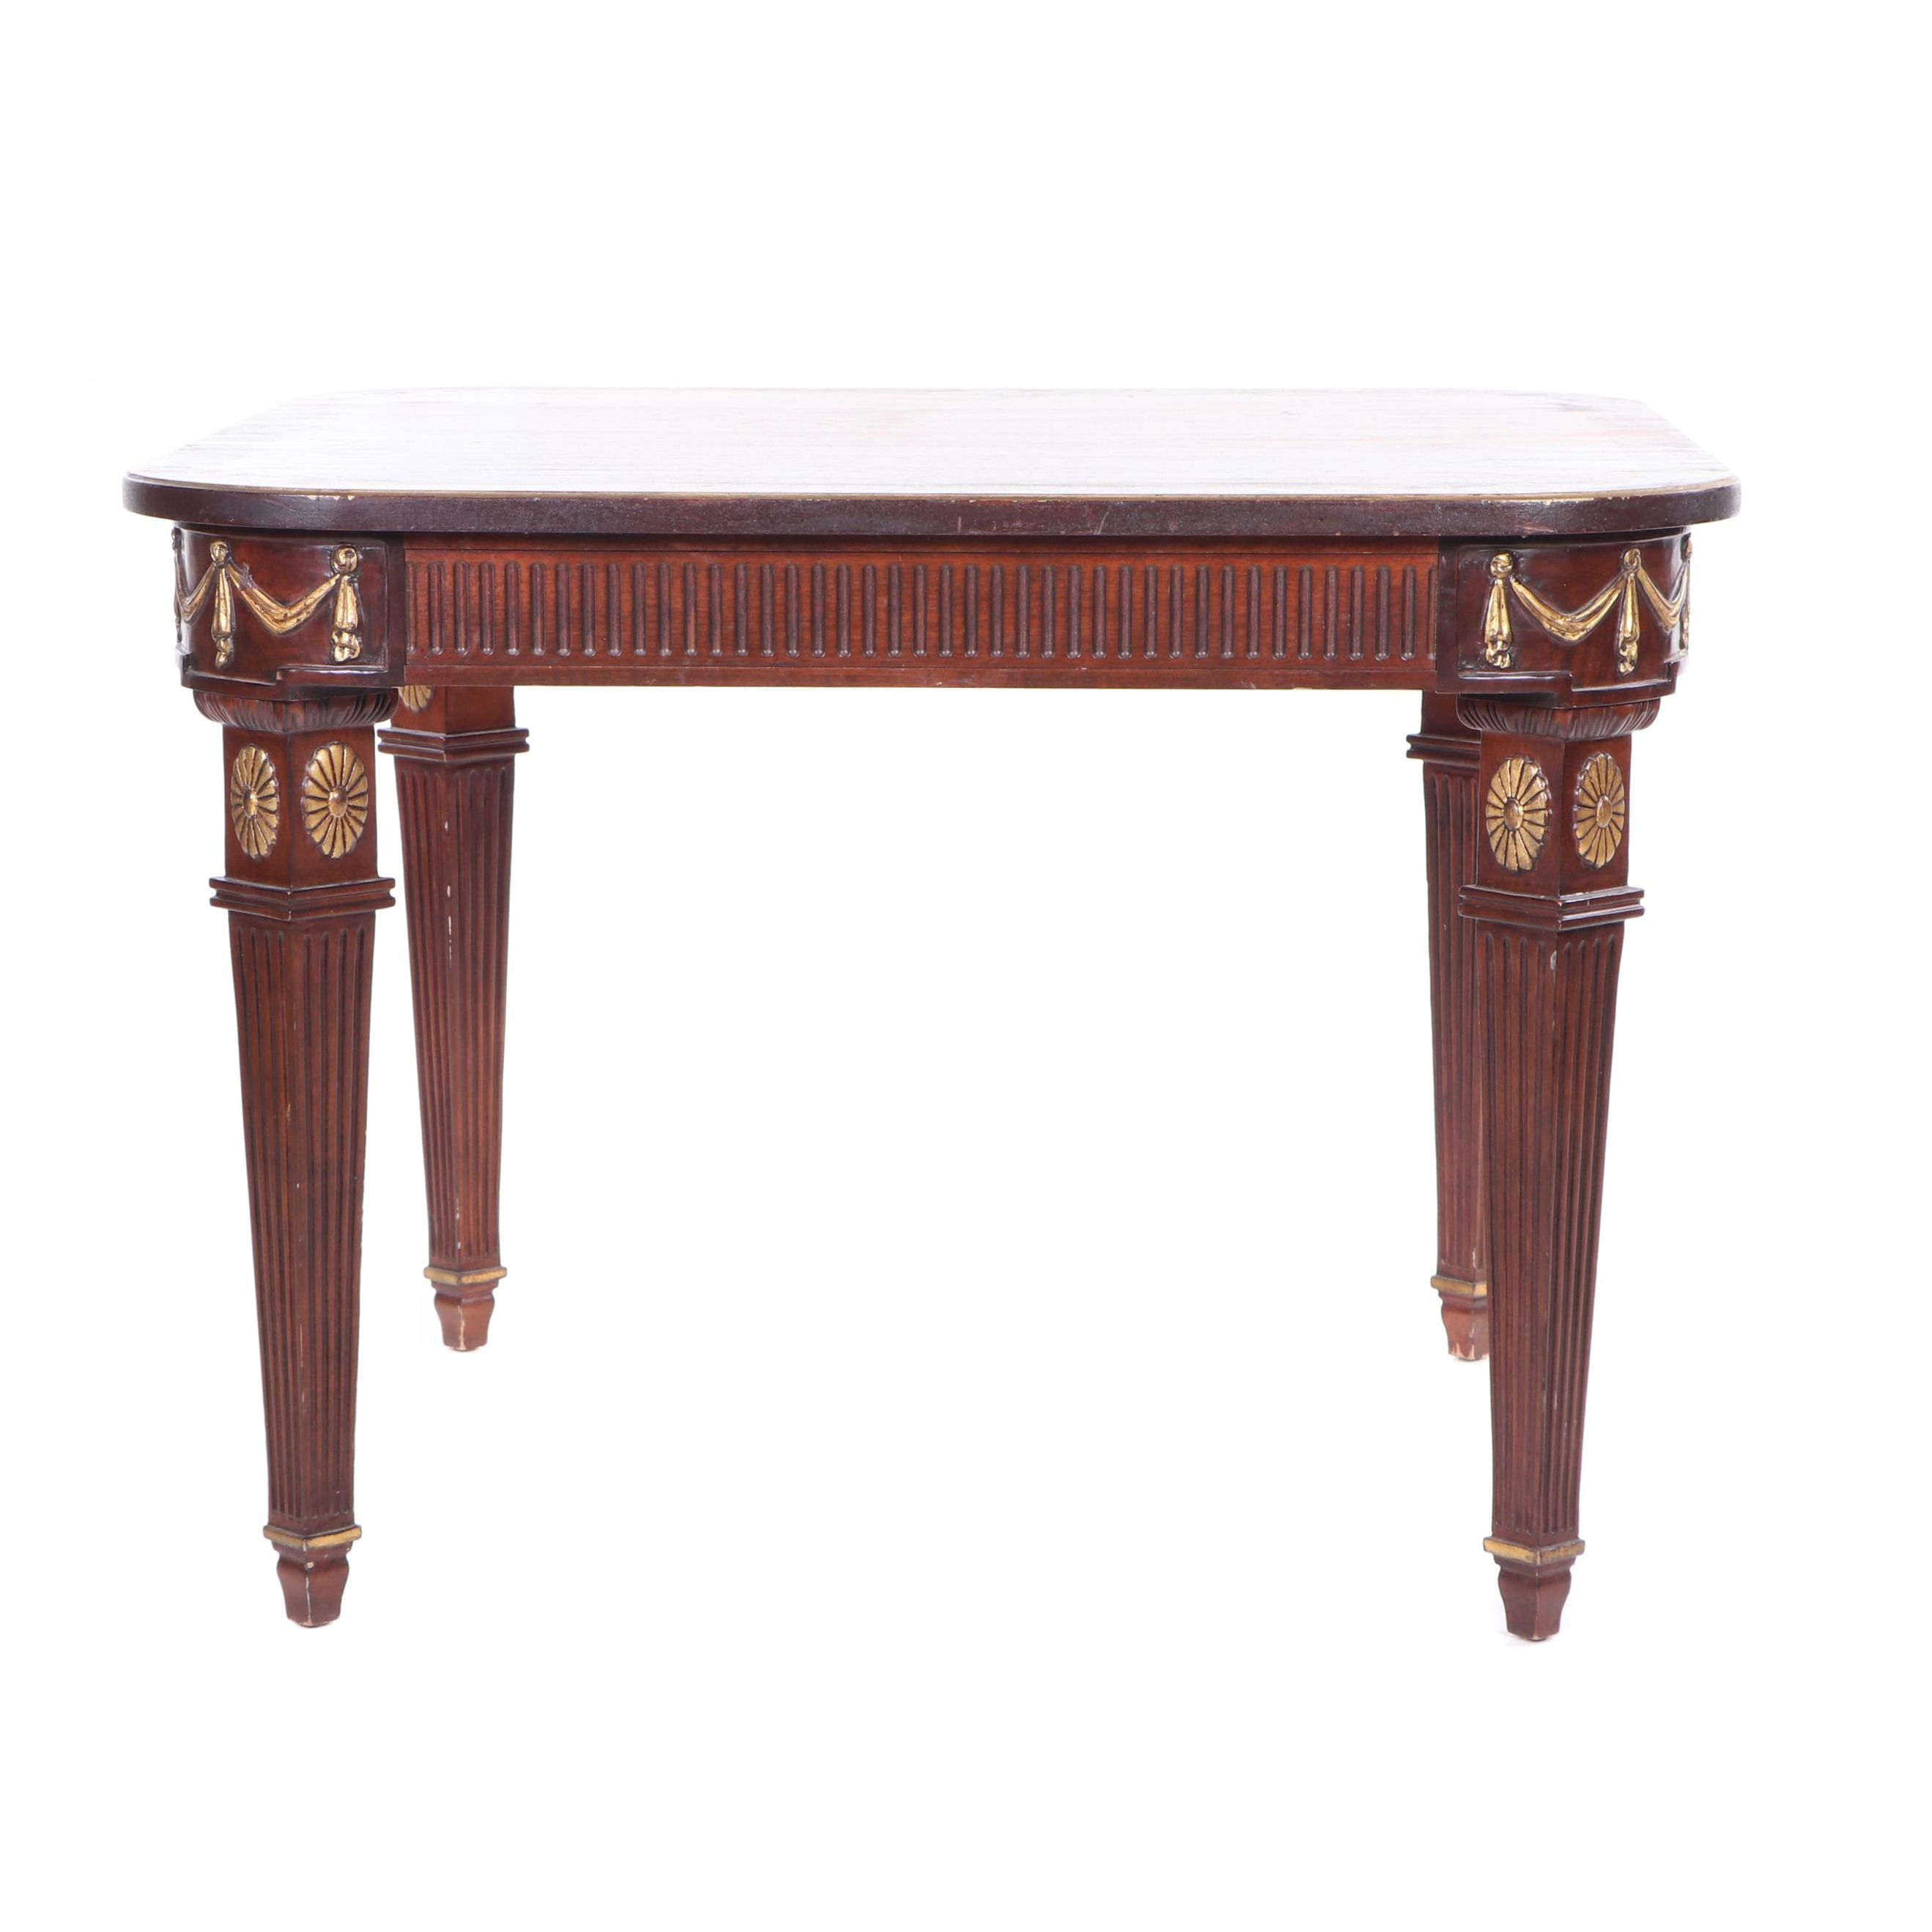 Neoclassical Style Fluted Mahogany Game Table with Gilt Detailing